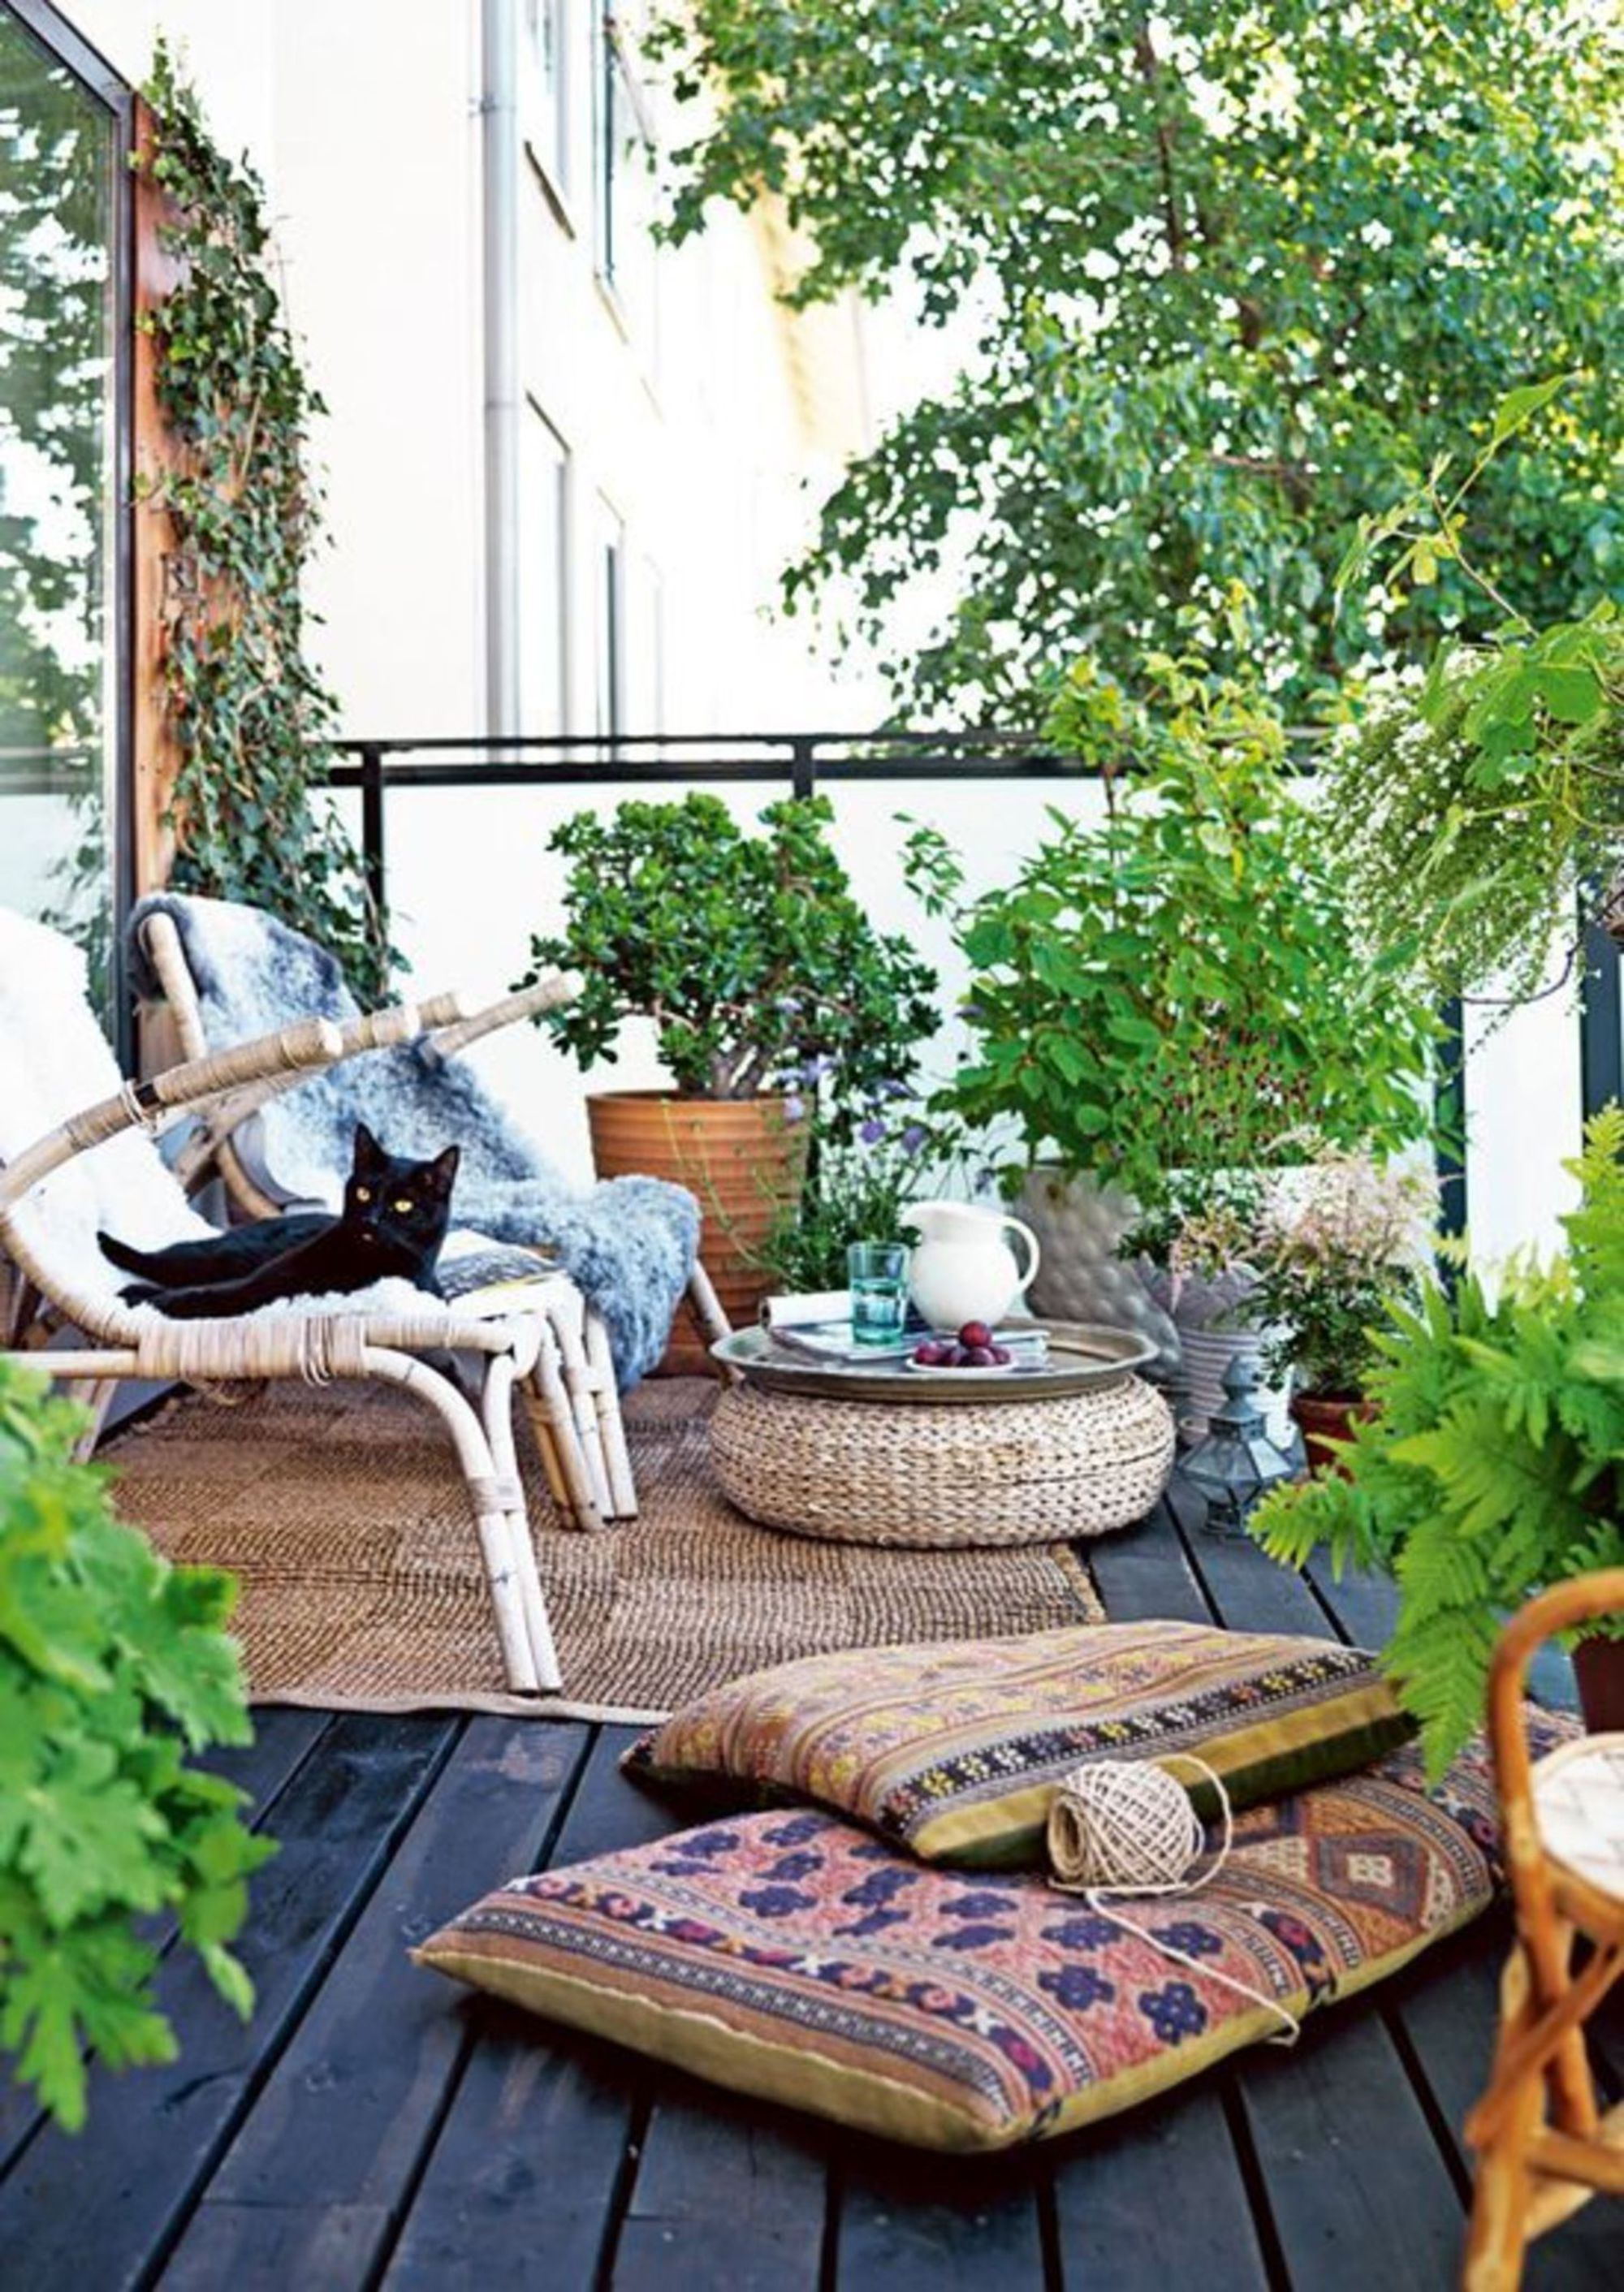 8 Ideas to Adopt the Bohemian Spirit on Your Terrace | Small ... on summer backyard ideas, jucuzzi tub backyard ideas, country backyard ideas, beautiful backyard ideas, gothic backyard ideas, moroccan backyard ideas, chinese backyard ideas, creative backyard ideas, traditional backyard ideas, trendy backyard ideas, concrete backyard patio ideas, czech backyard ideas, urban backyard ideas, elegant backyard ideas, retro backyard ideas, irish backyard ideas, unique backyard ideas, greek backyard ideas, blue backyard ideas, native american backyard ideas,